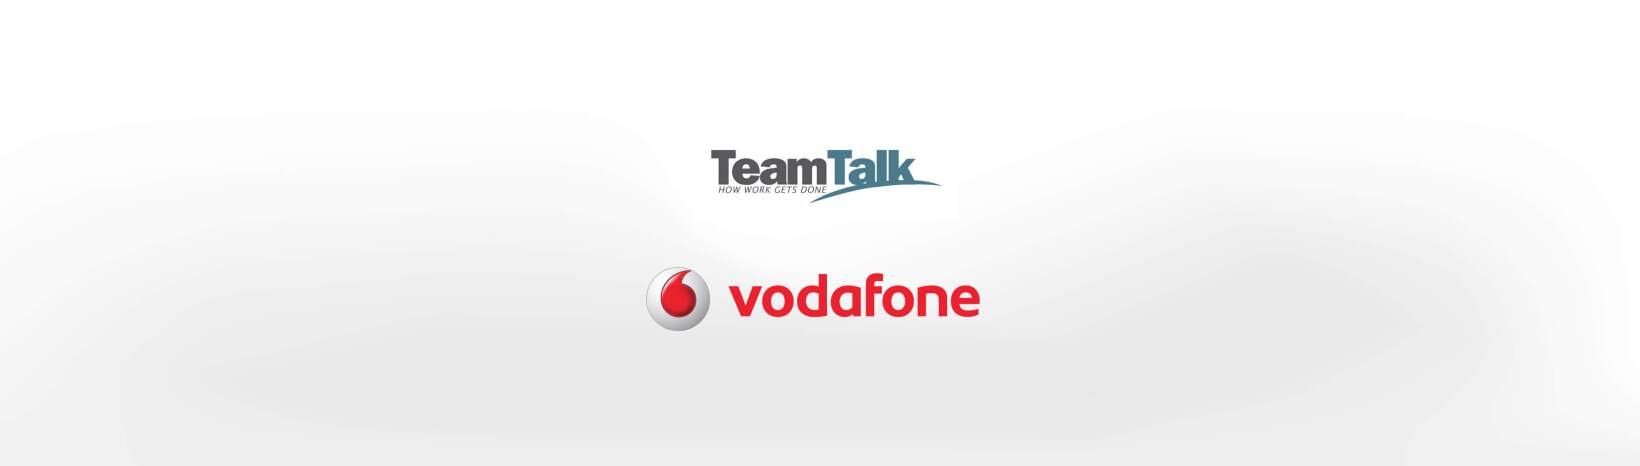 Vodafone New Zealand to acquire 70 per cent stake in TeamTalk's Farmside for $10 million in cash